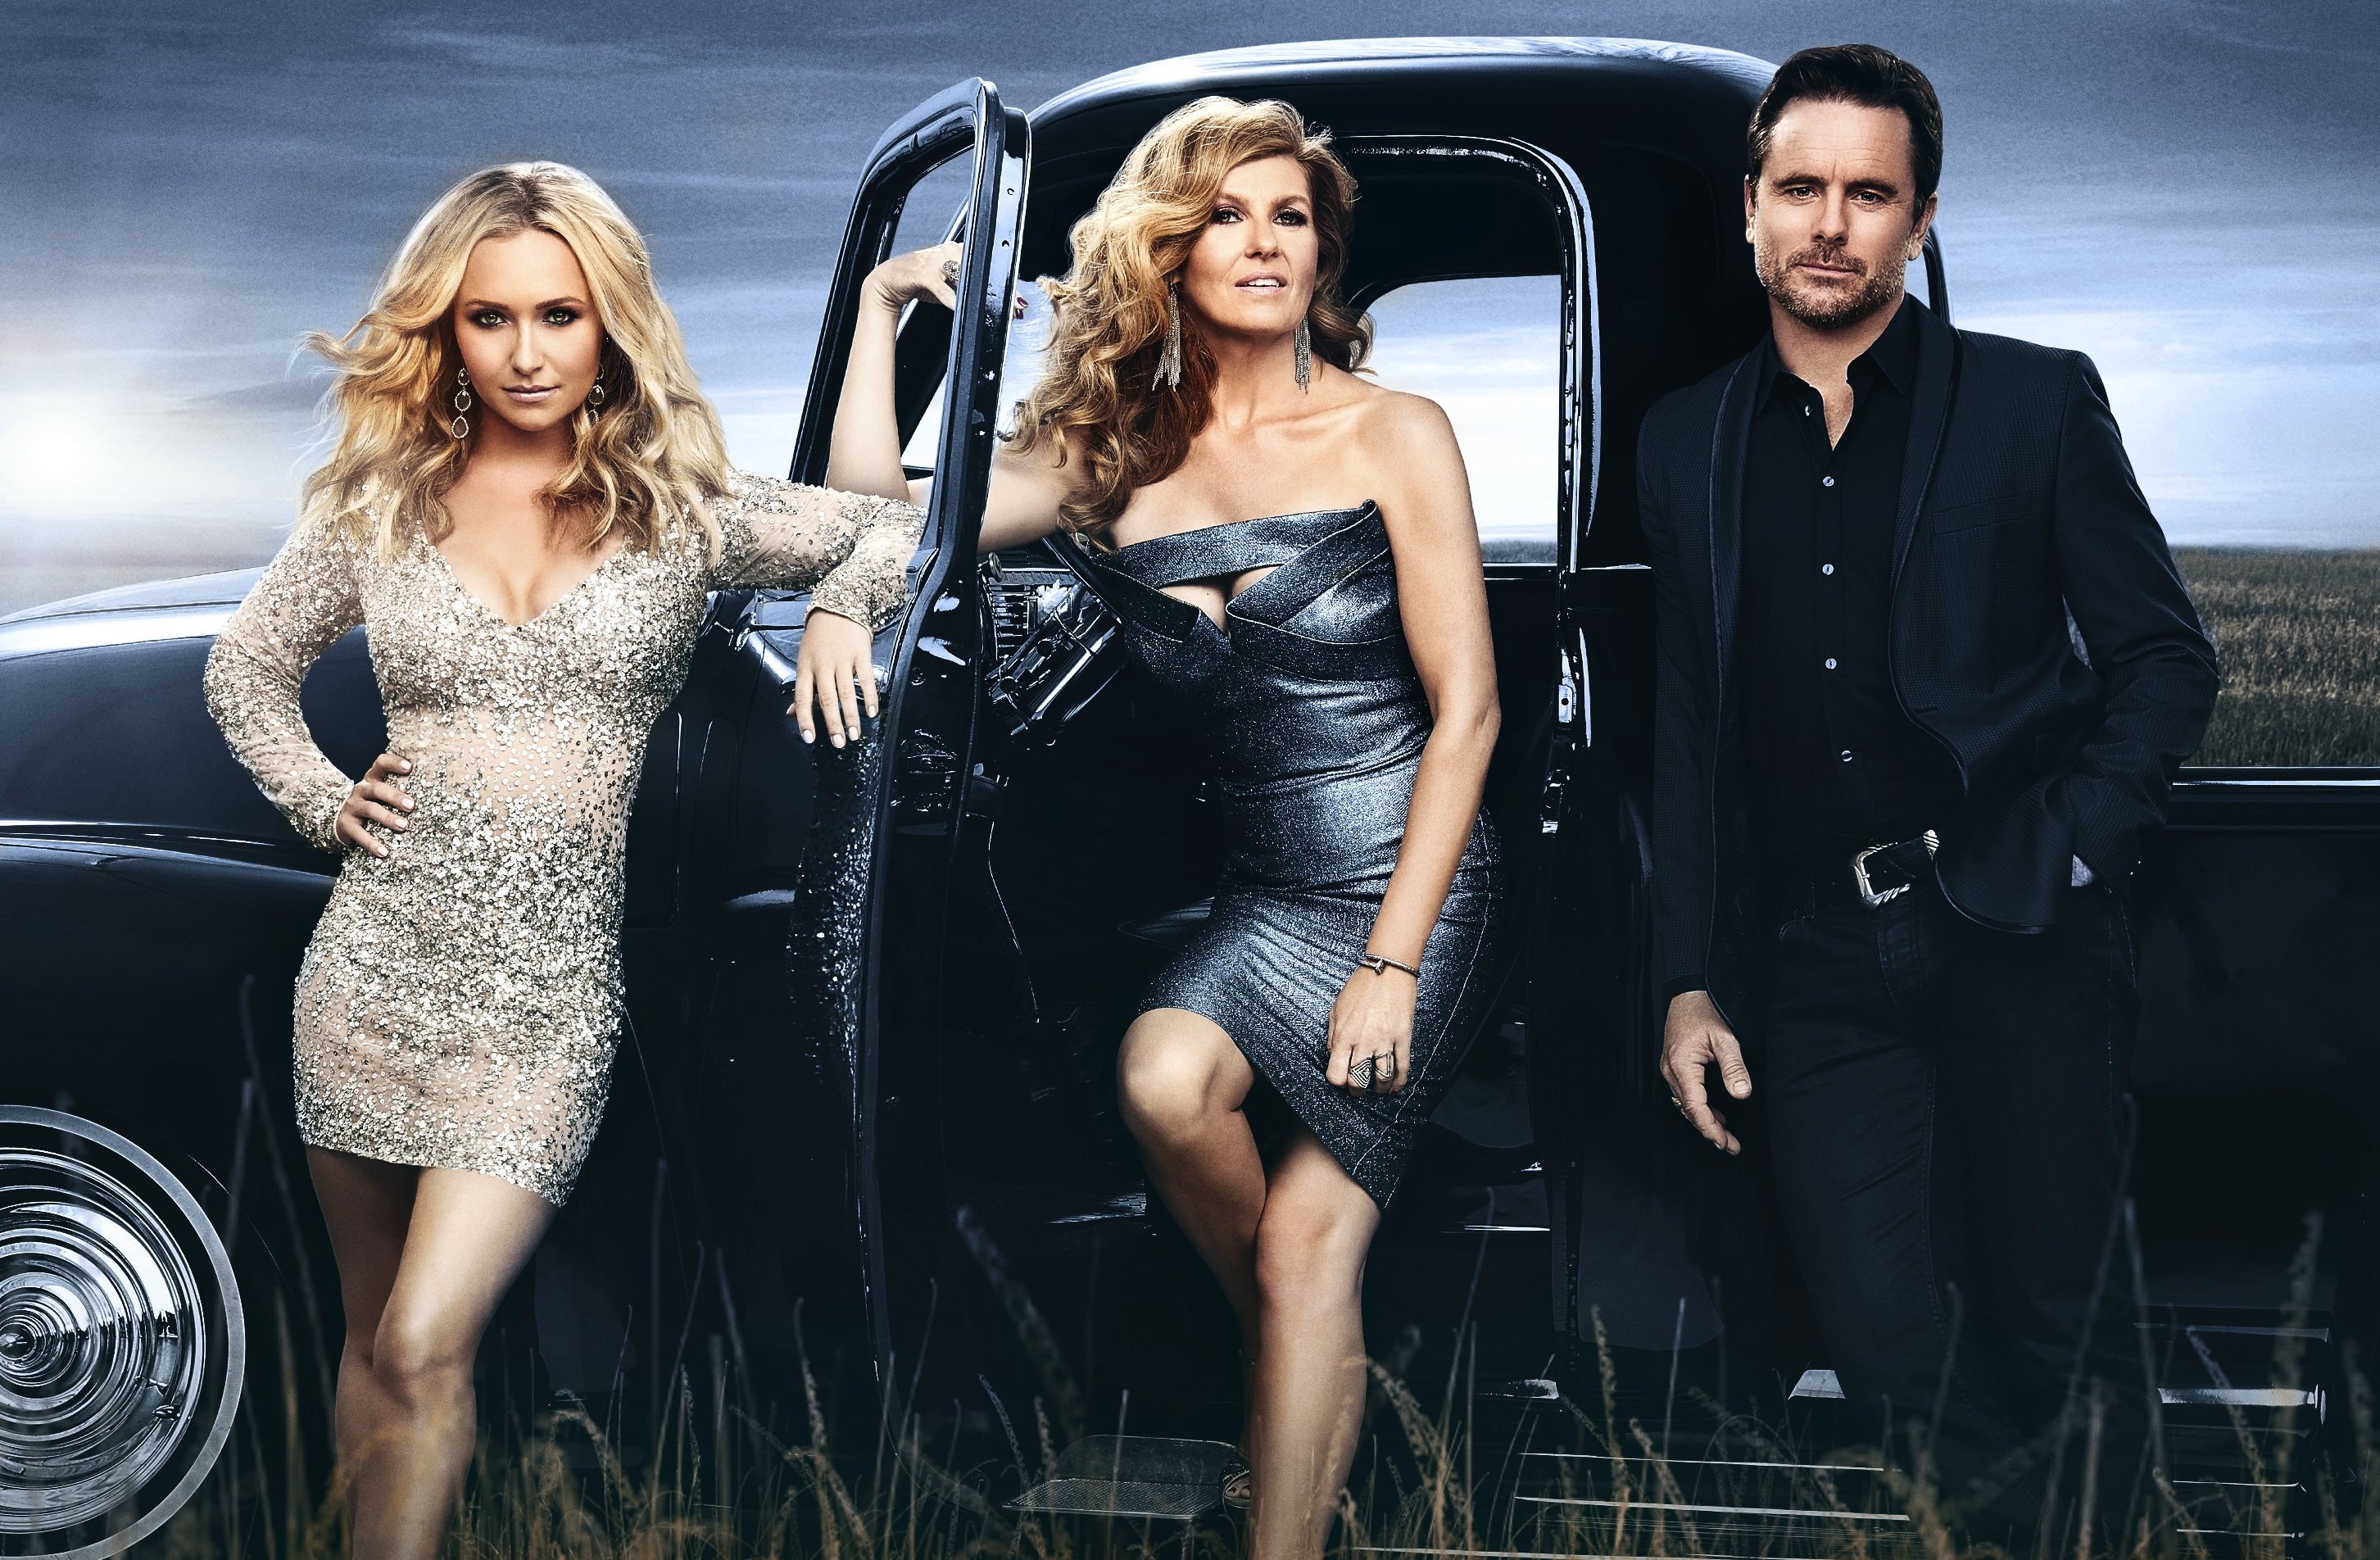 ABC Cancels Nashville in Surprise Move